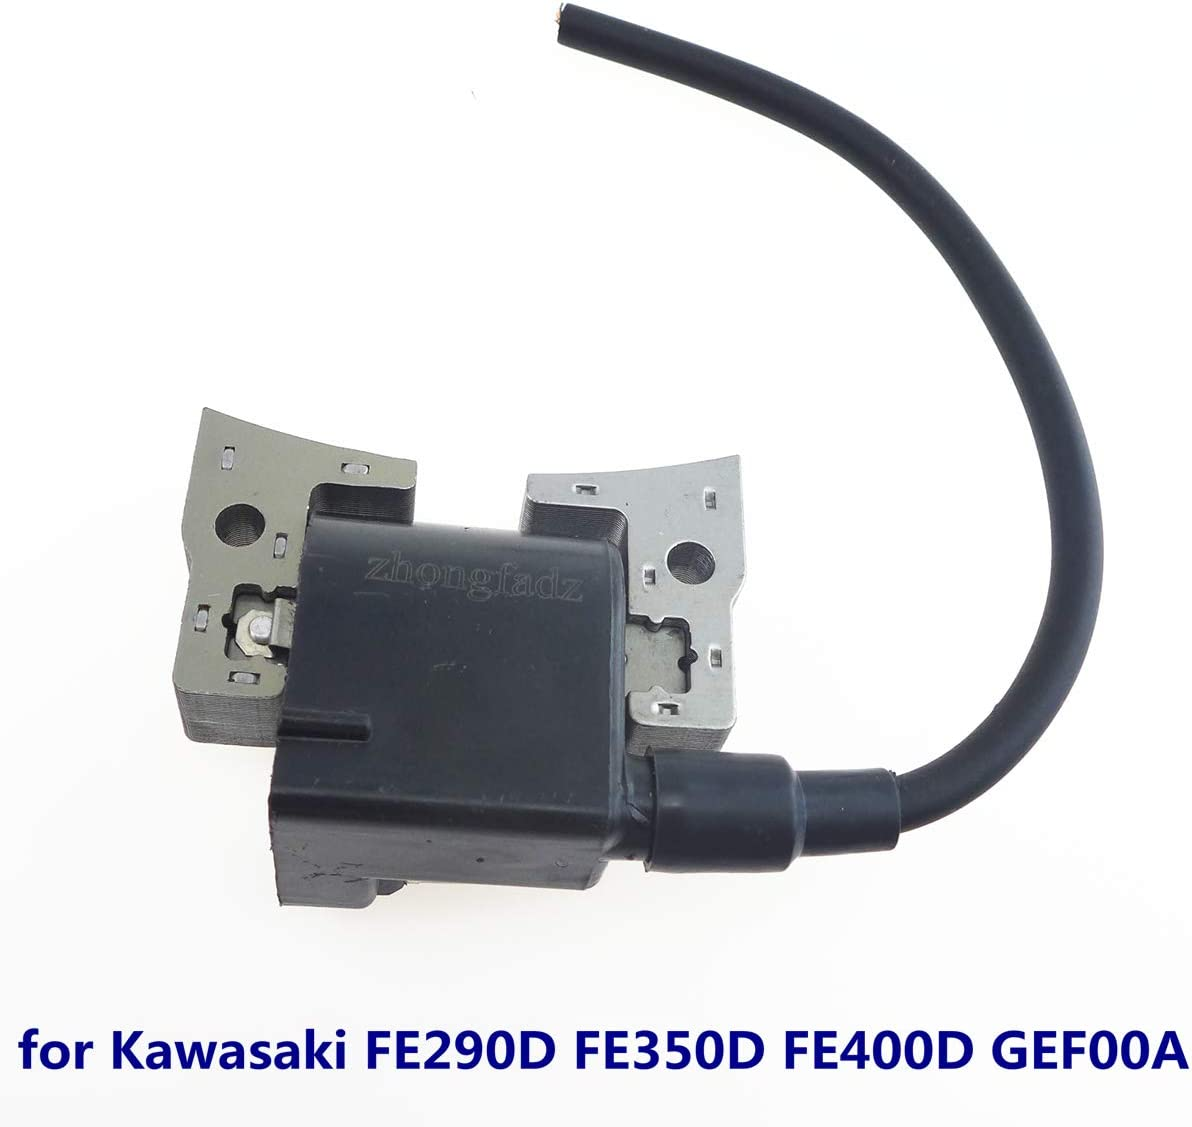 Bosting 21171-2207, Ignition Coil for Kawasaki FE290D FE350D FE400D GEF00A